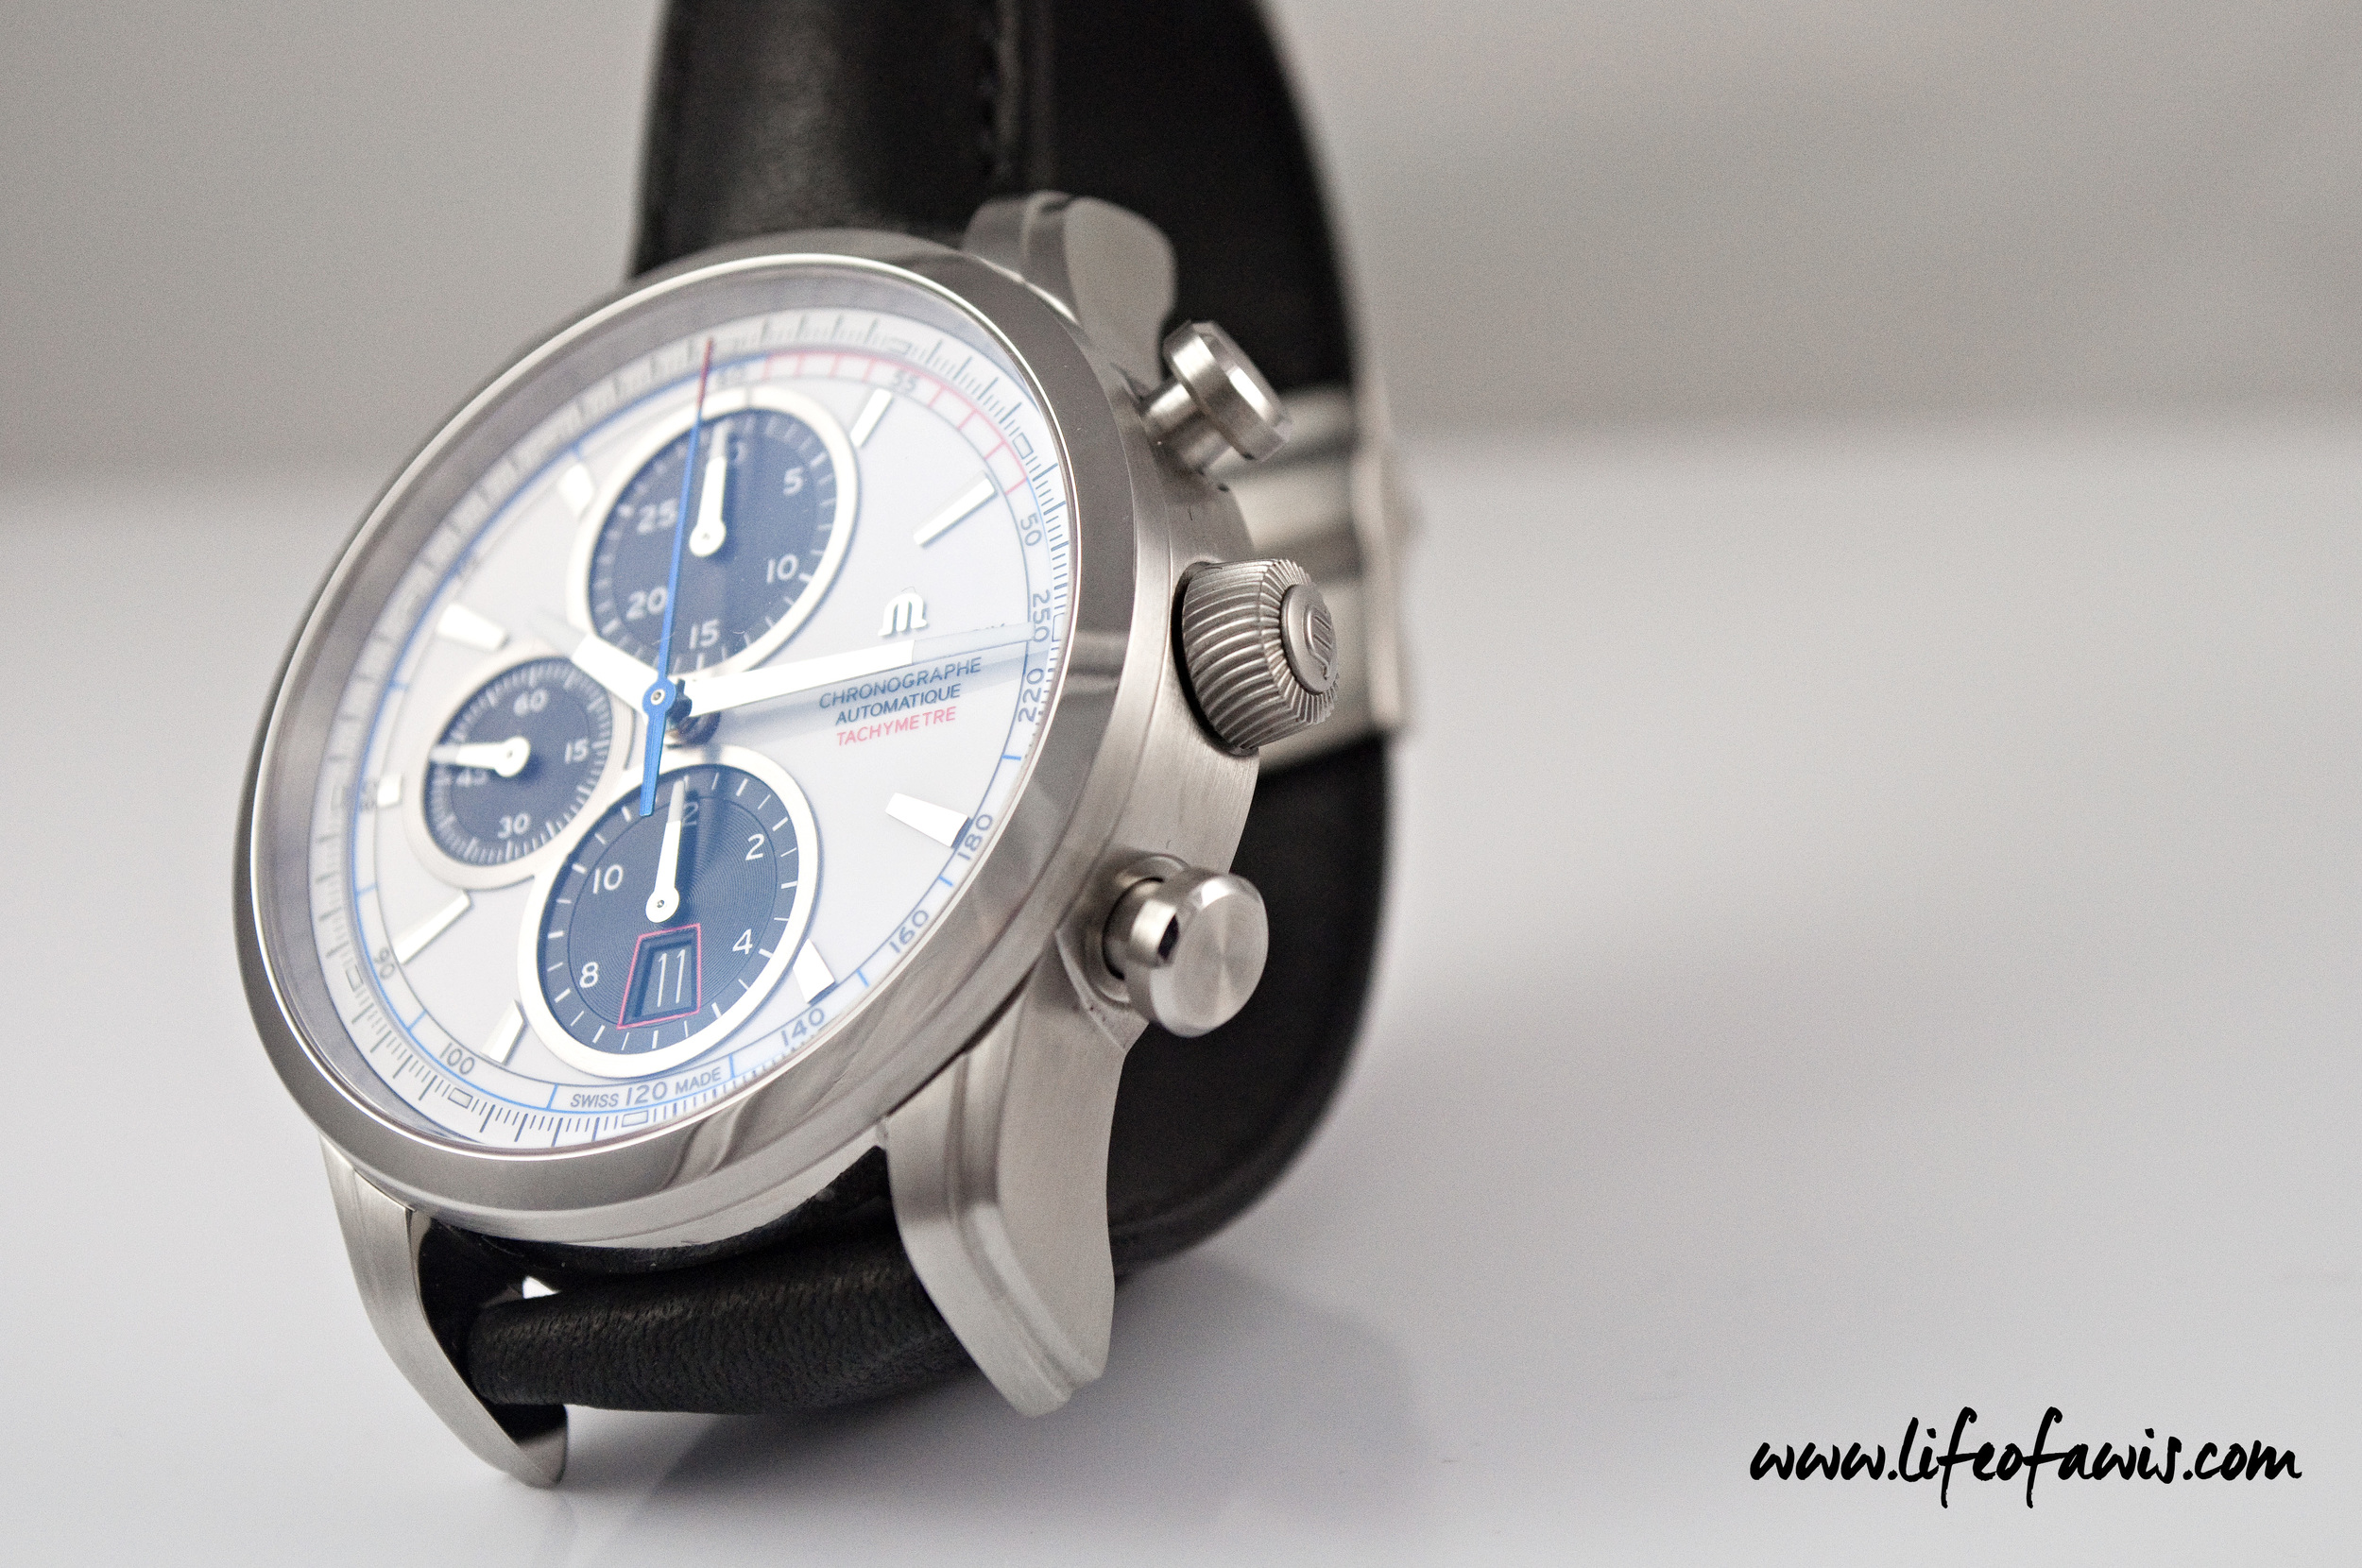 Props to Maurice Lacroix for these unique and attractive looking chrono pushers and crown.